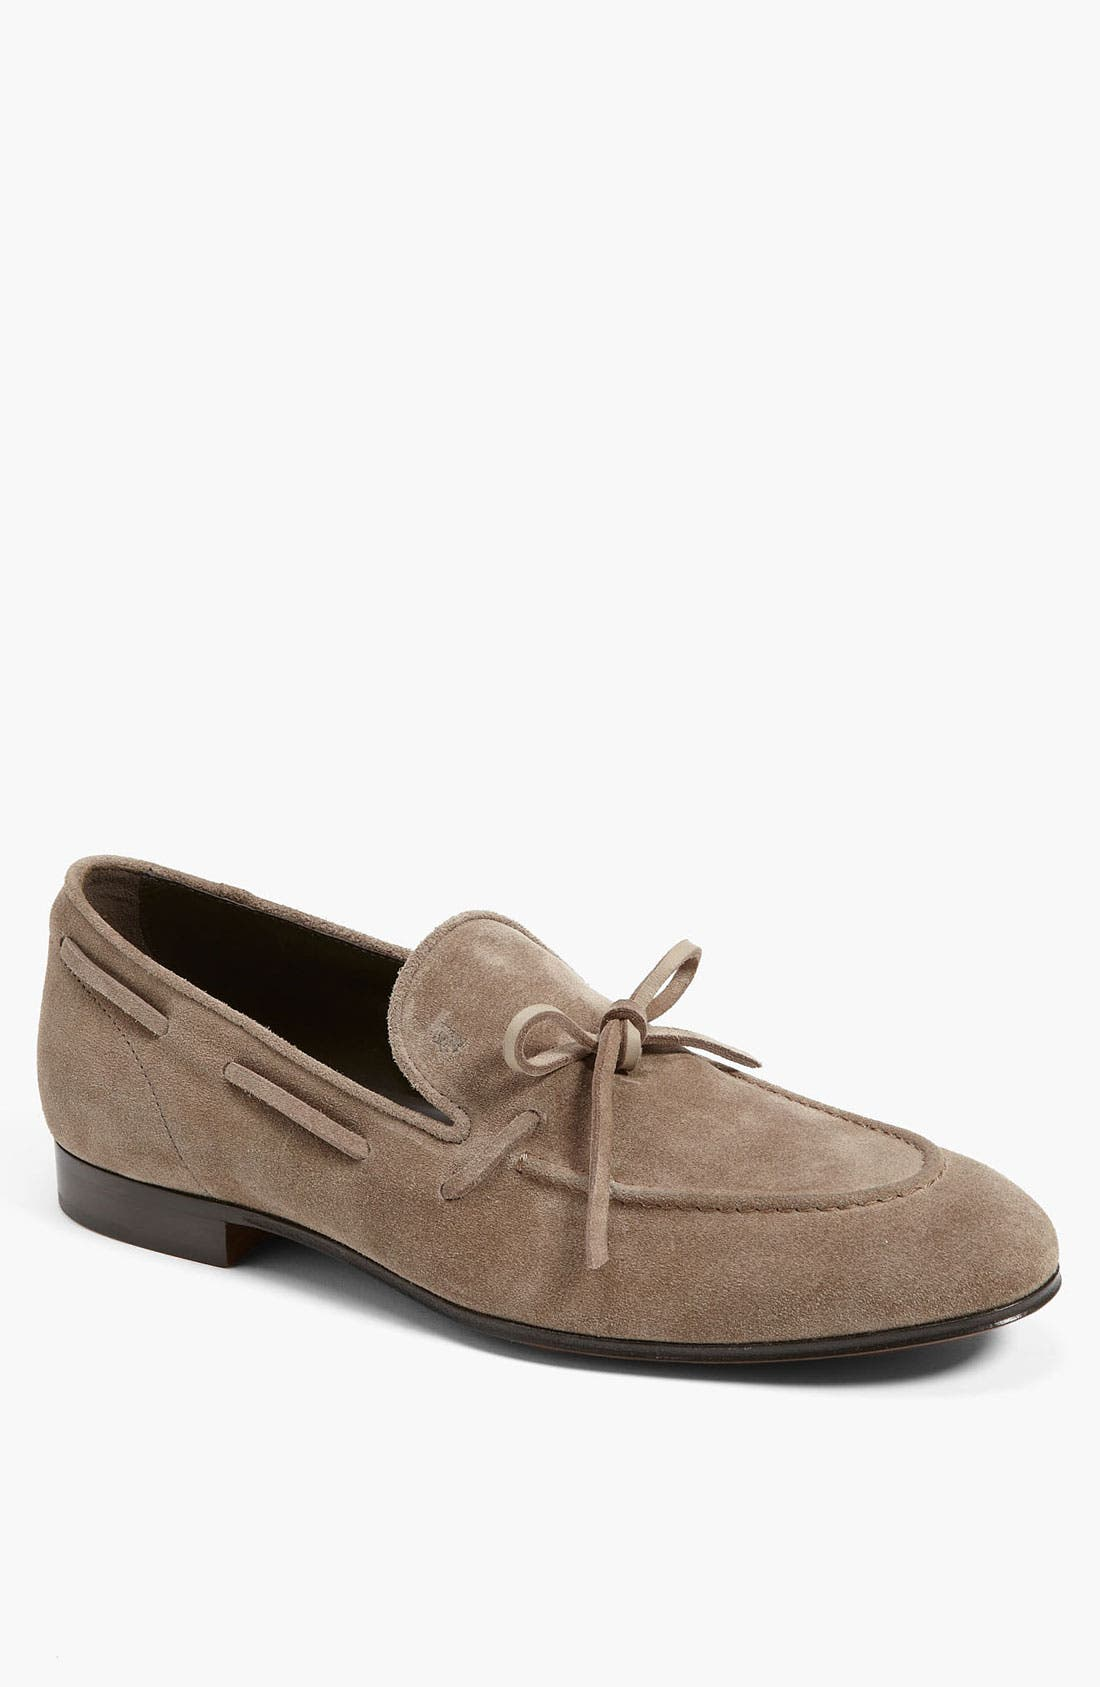 Suede Loafer,                             Main thumbnail 1, color,                             249